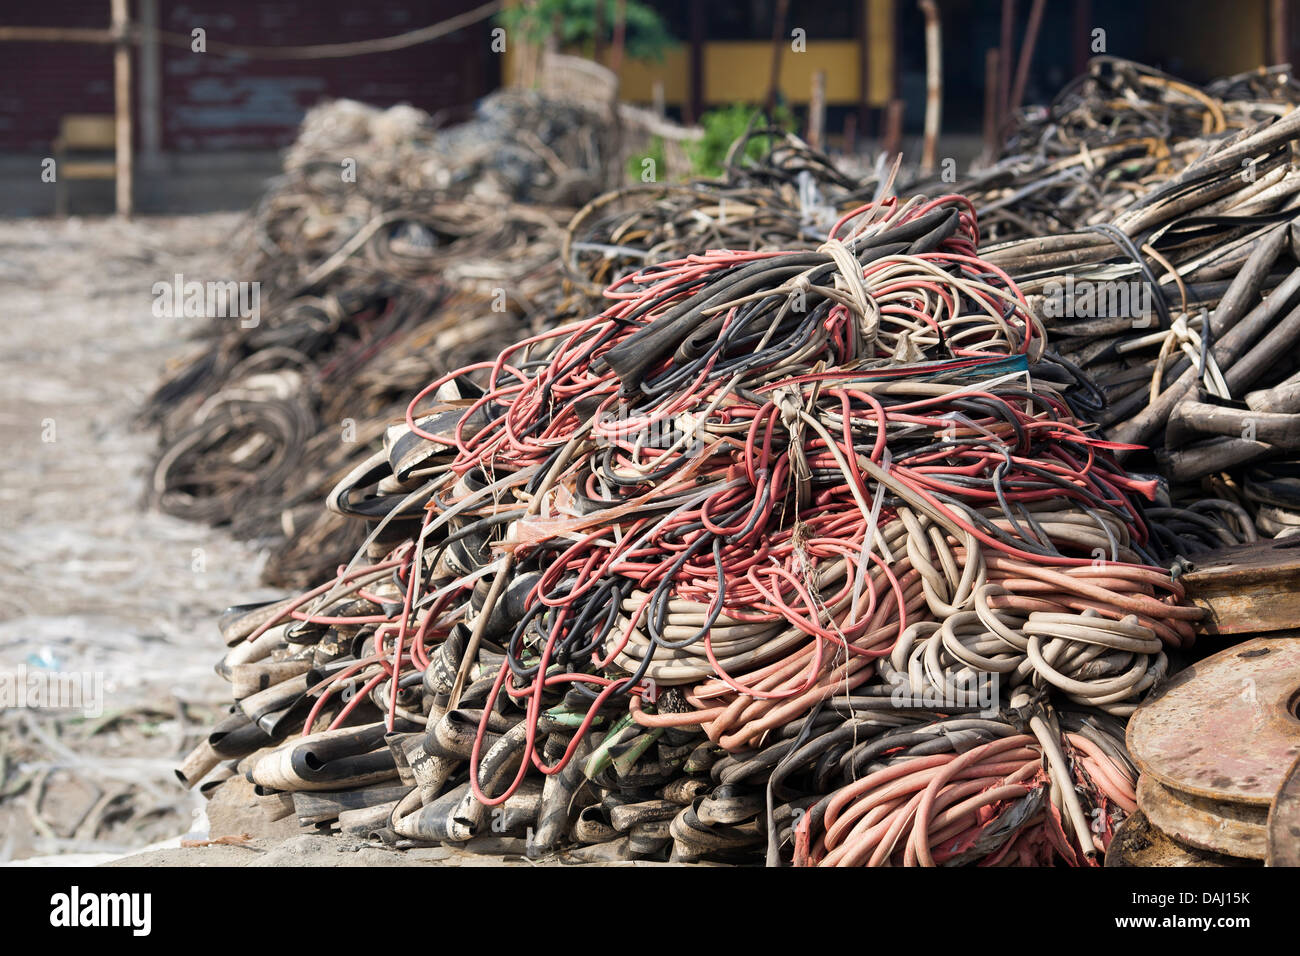 Piles of discarded wiring ready for s at the ship ... on ship maintenance, alternating current, distribution board, electrical engineering, three-phase electric power, electric power distribution, wiring diagram, ship mirrors, ship wood, ship kitchen, national electrical code, circuit breaker, ship paint, ship fenders, ship interior, junction box, power cord, knob-and-tube wiring, ship components, ship generator, ship doors, ship lighting, ground and neutral, ship tools, ship security, ship oil, ship parts, electric motor, extension cord, earthing system, ship horn, power cable, ship design, ship windows, ship safety, ship testing, electrical conduit,